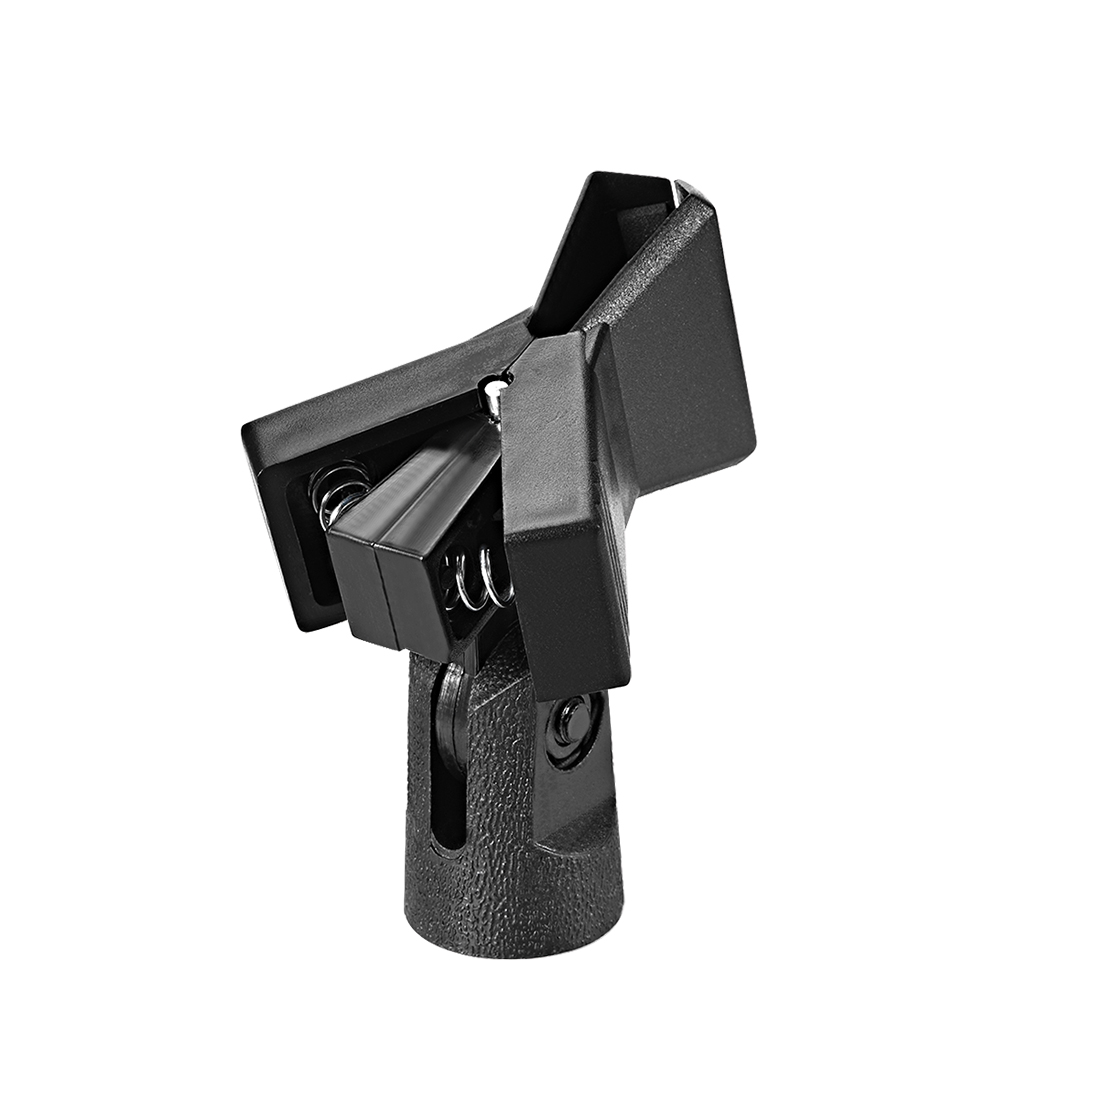 Universal Microphone Mic Clip Holder for 40mm Mic Stand 15mm Thread Dia